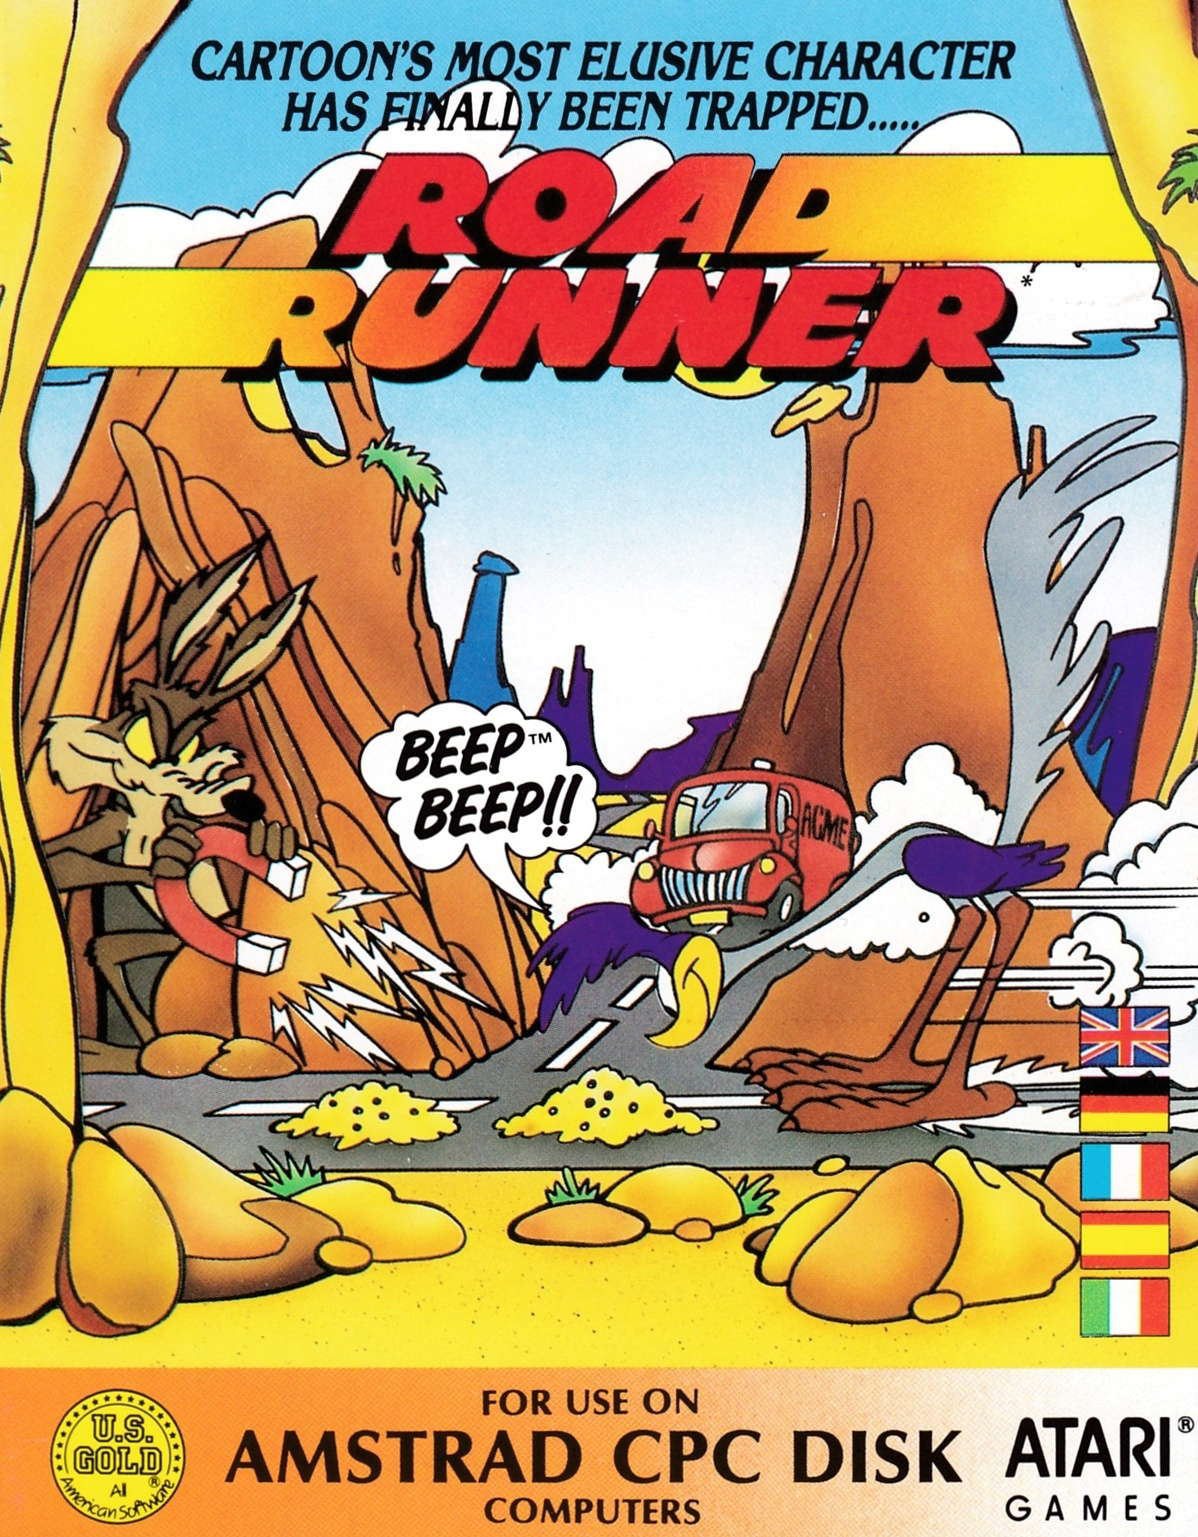 screenshot of the Amstrad CPC game Road Runner by GameBase CPC